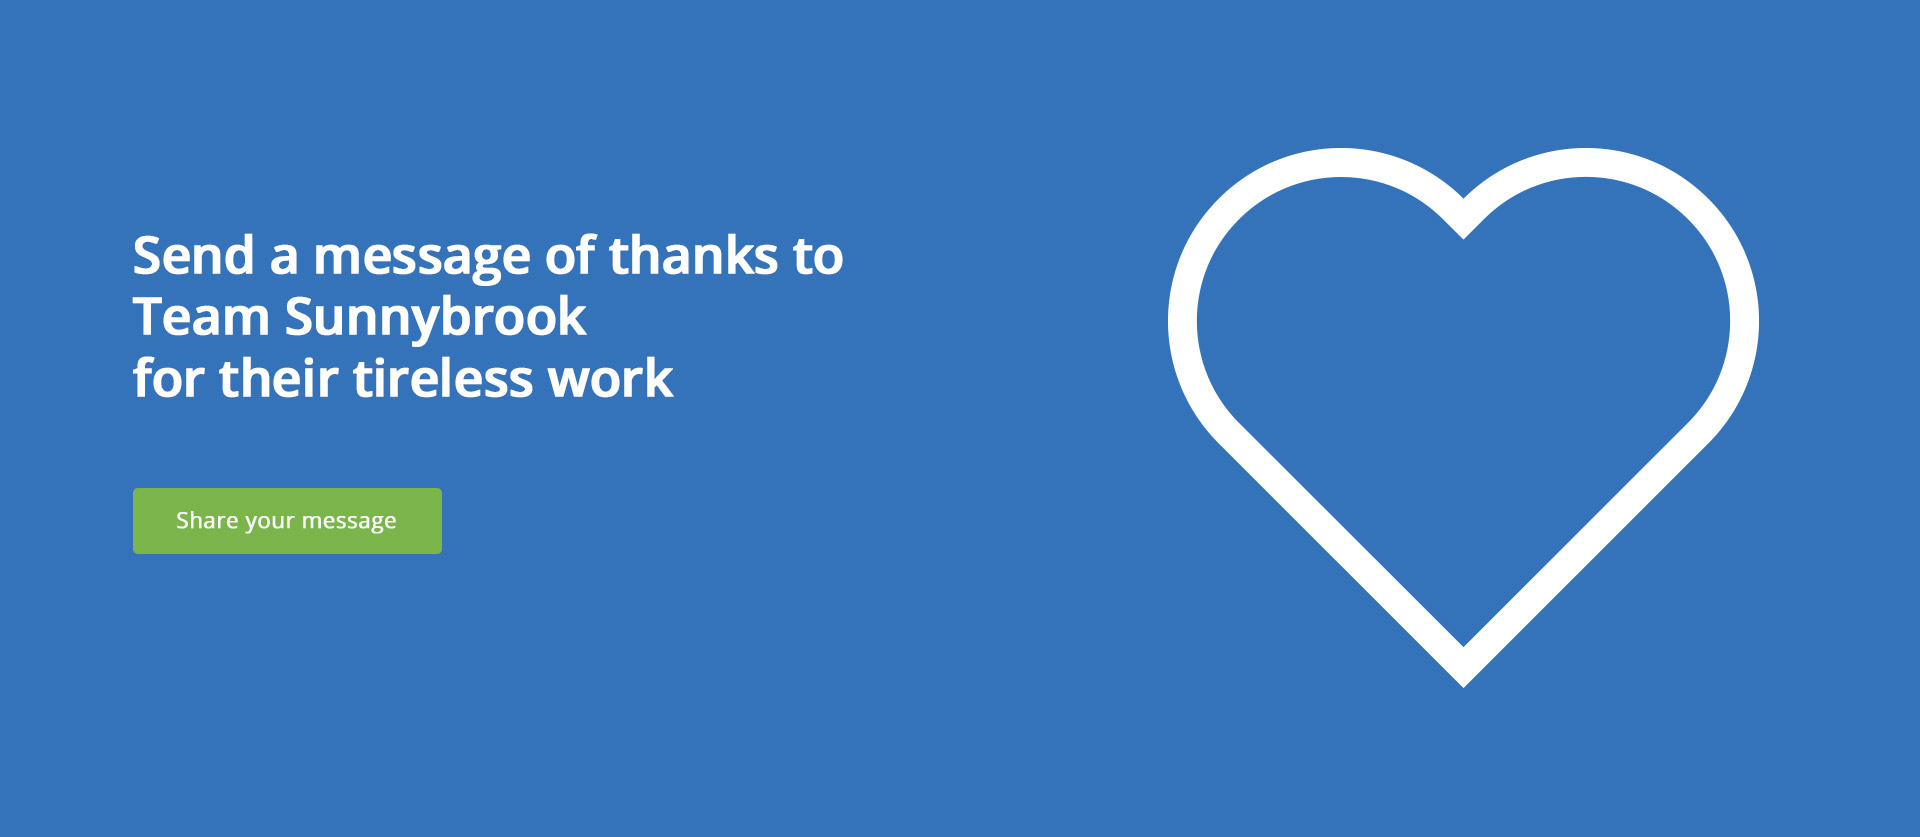 Send a message of thanks to Team Sunnybrook